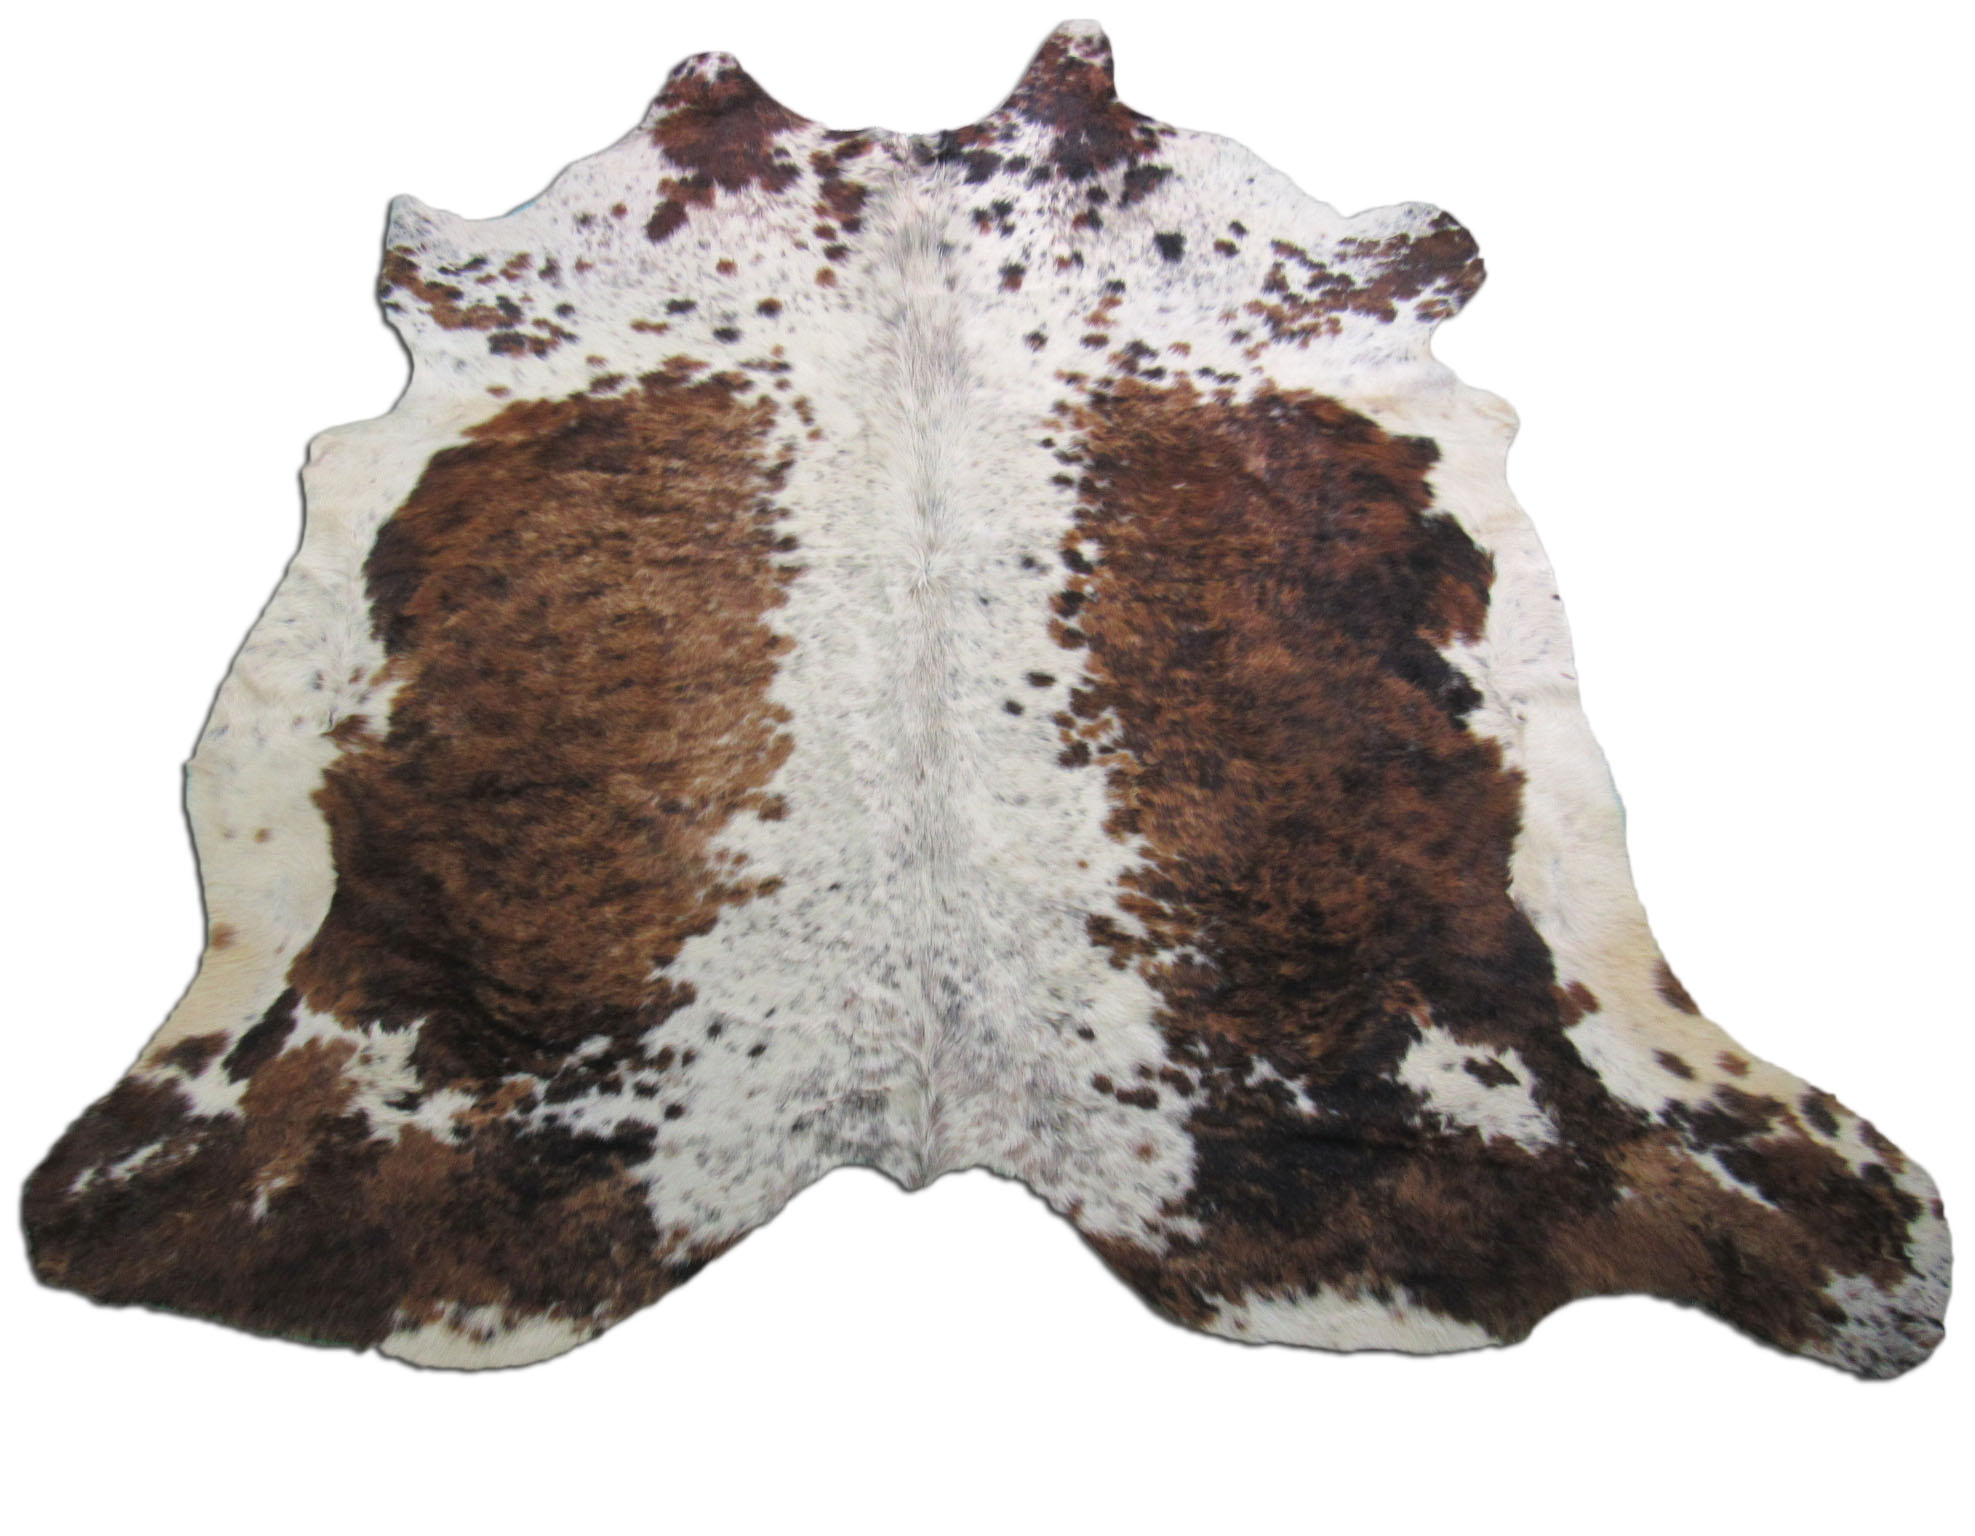 A-1243 Tricolor Speckled Cowhide Rug Size: 7 1/2' X 7 1/2'